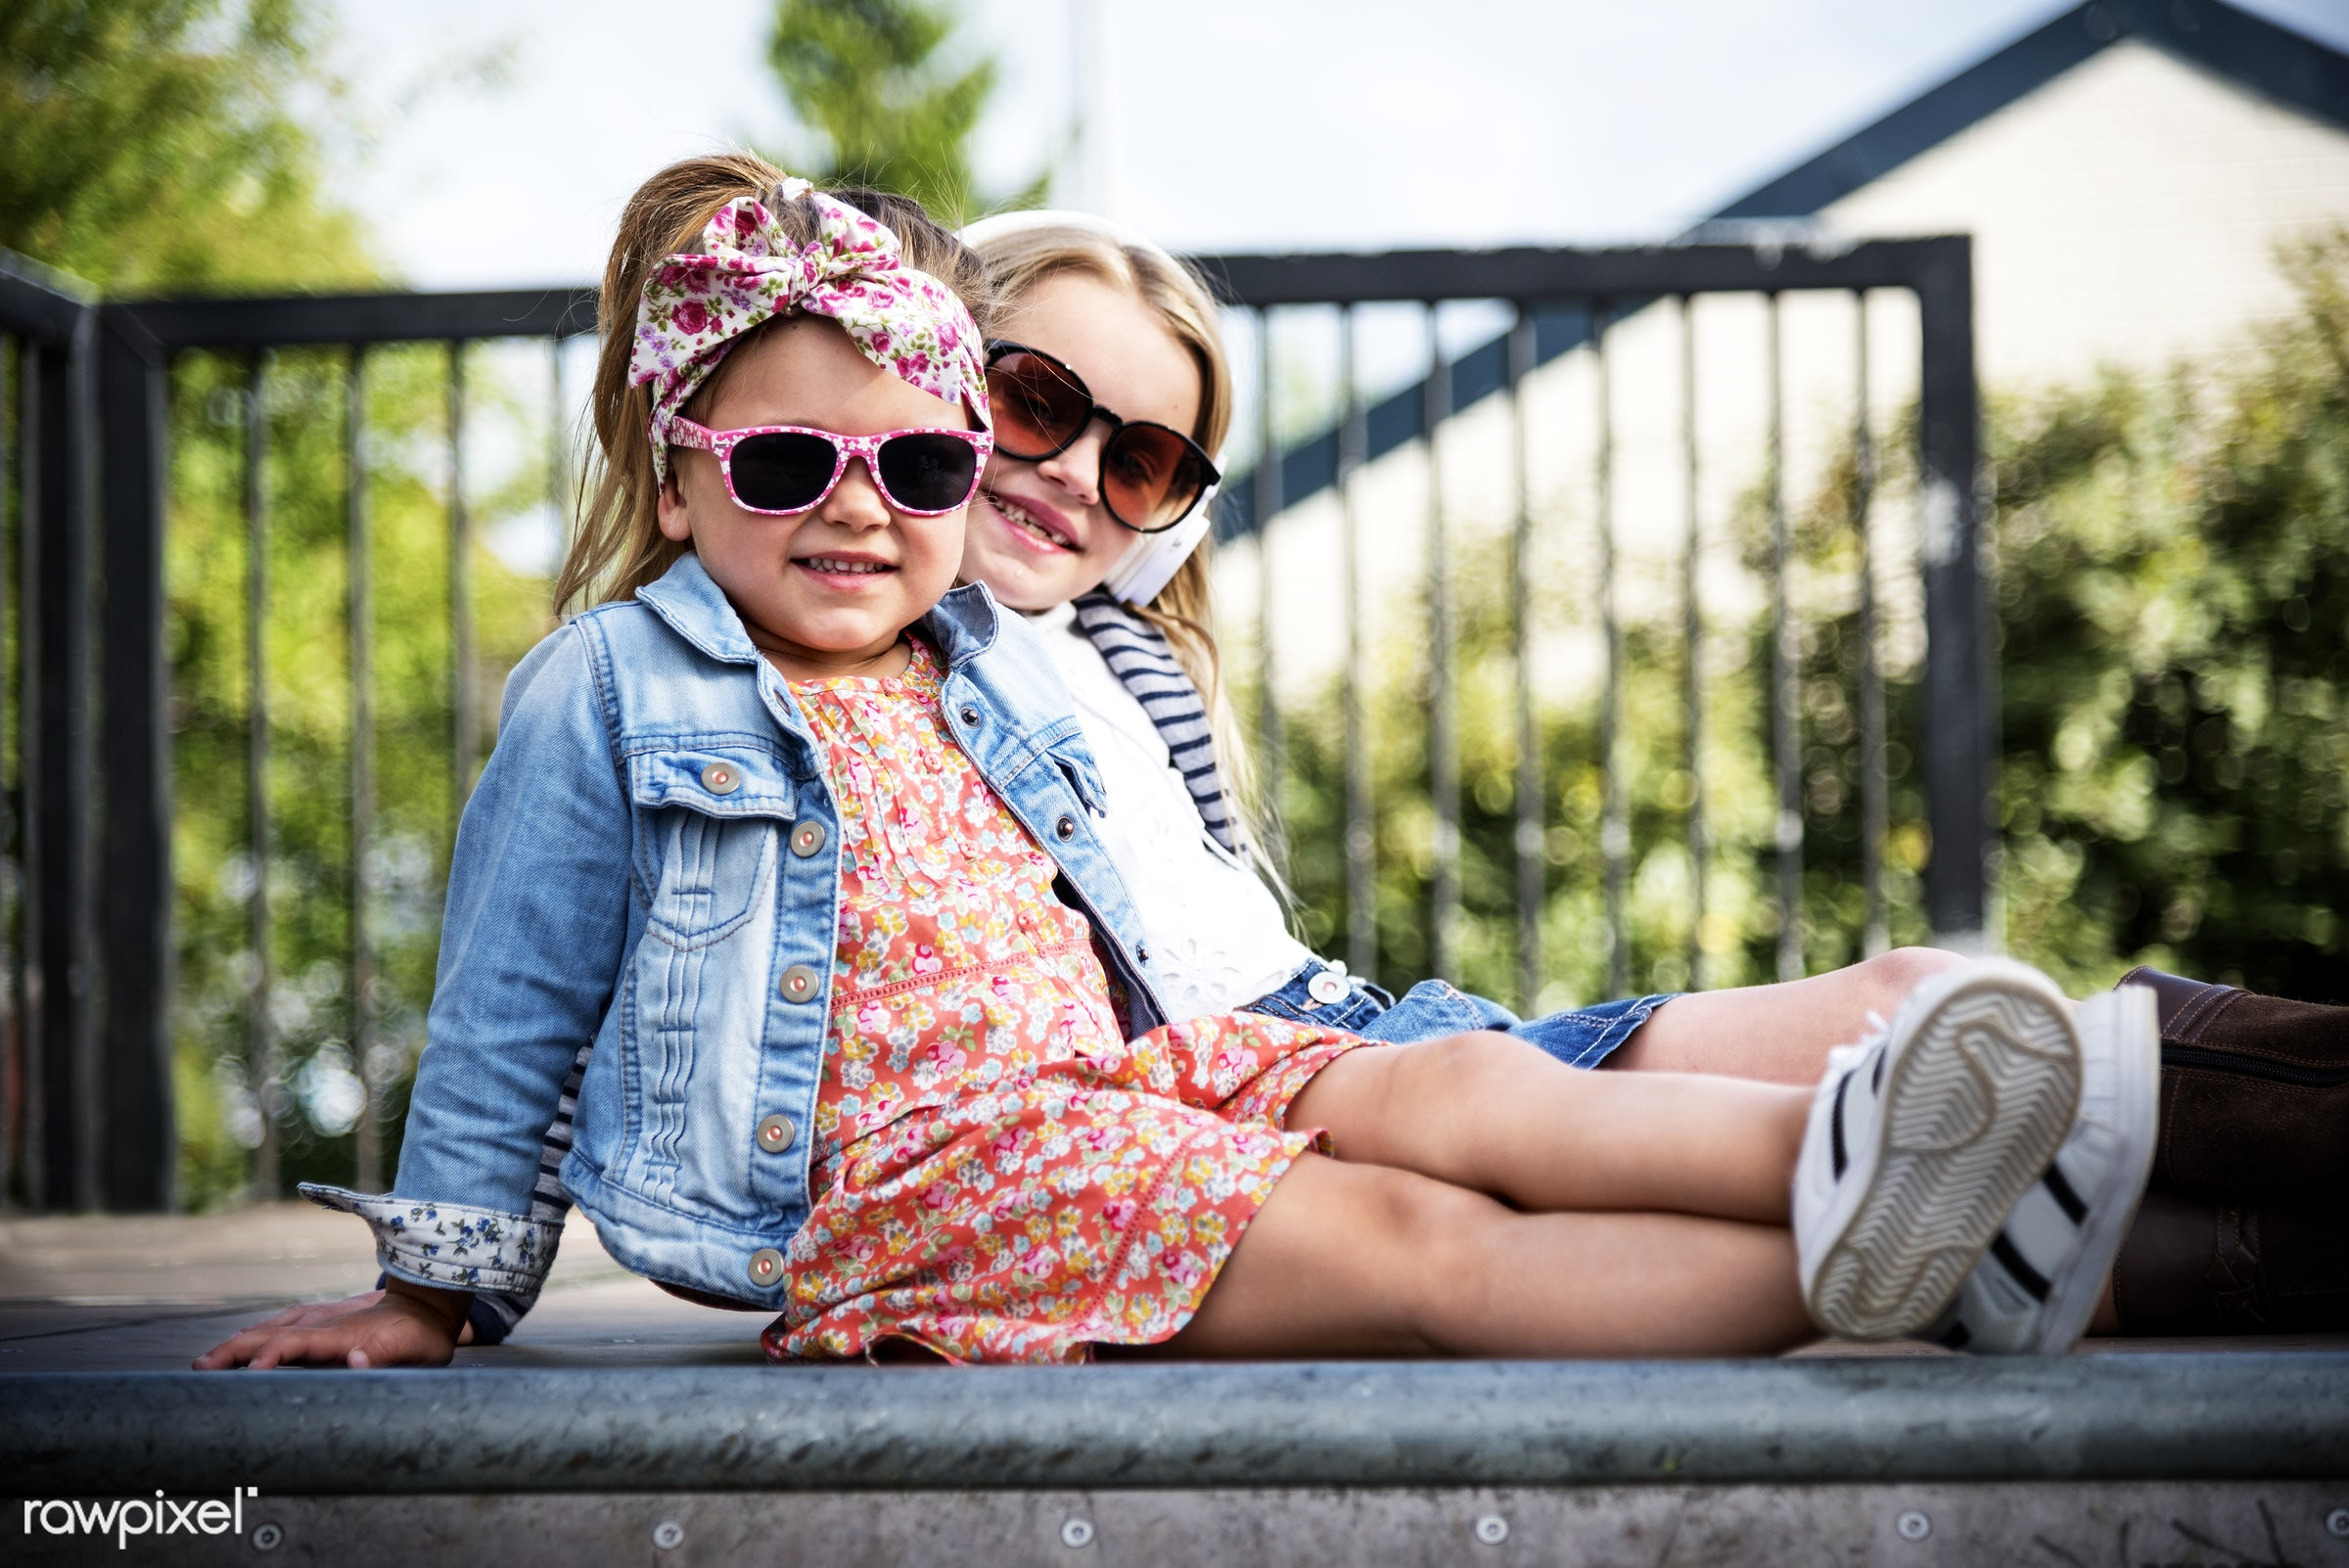 Adorable little girl fashionistas street style - adorable, buddy, casual, caucasian, cheerful, chic, child, childhood,...